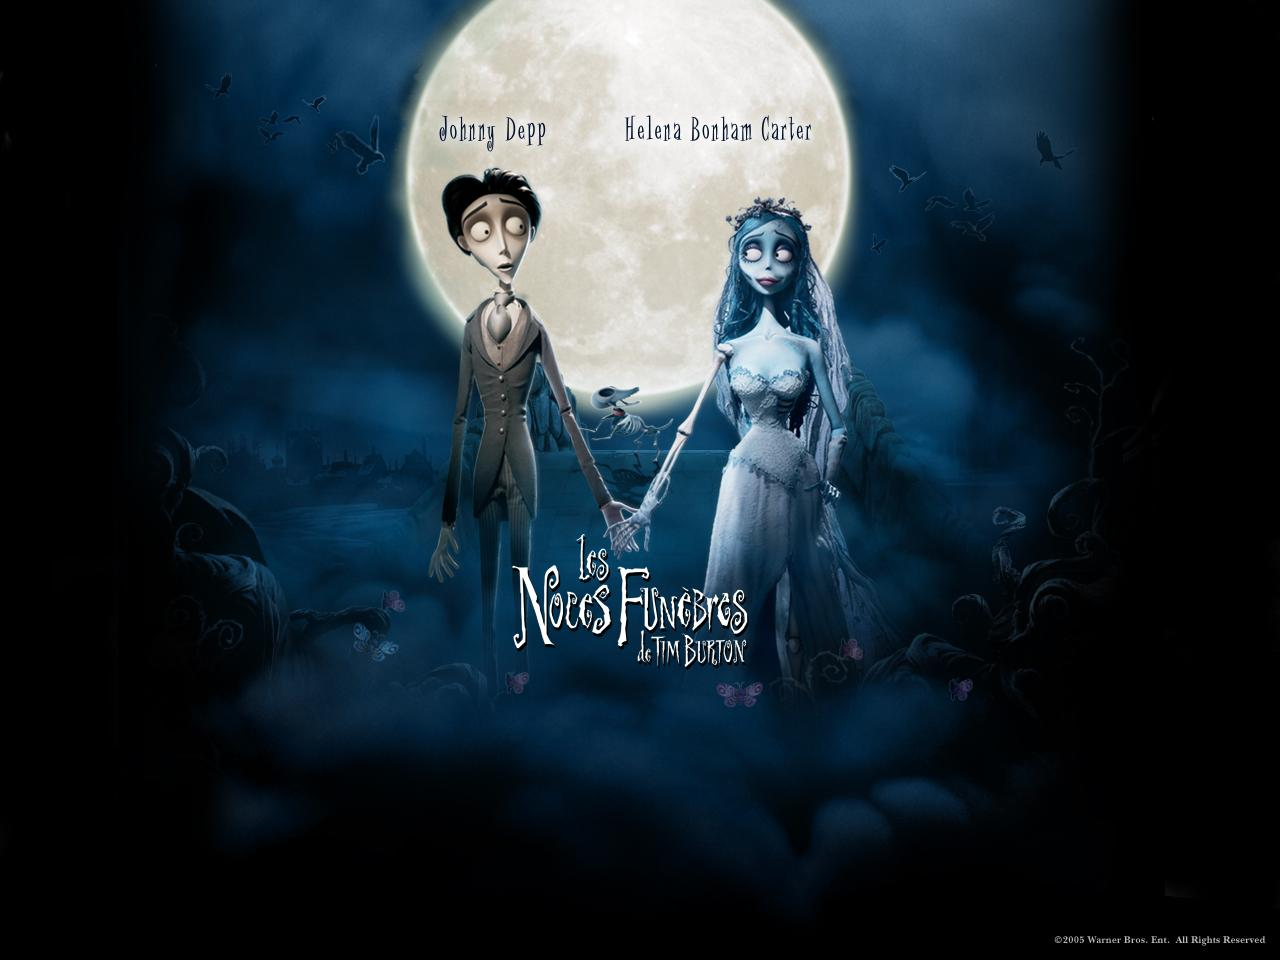 Wallpaper LES NOCES FUNEBRES de TIM BURTON Johnny Depp Helena Bonham Carter